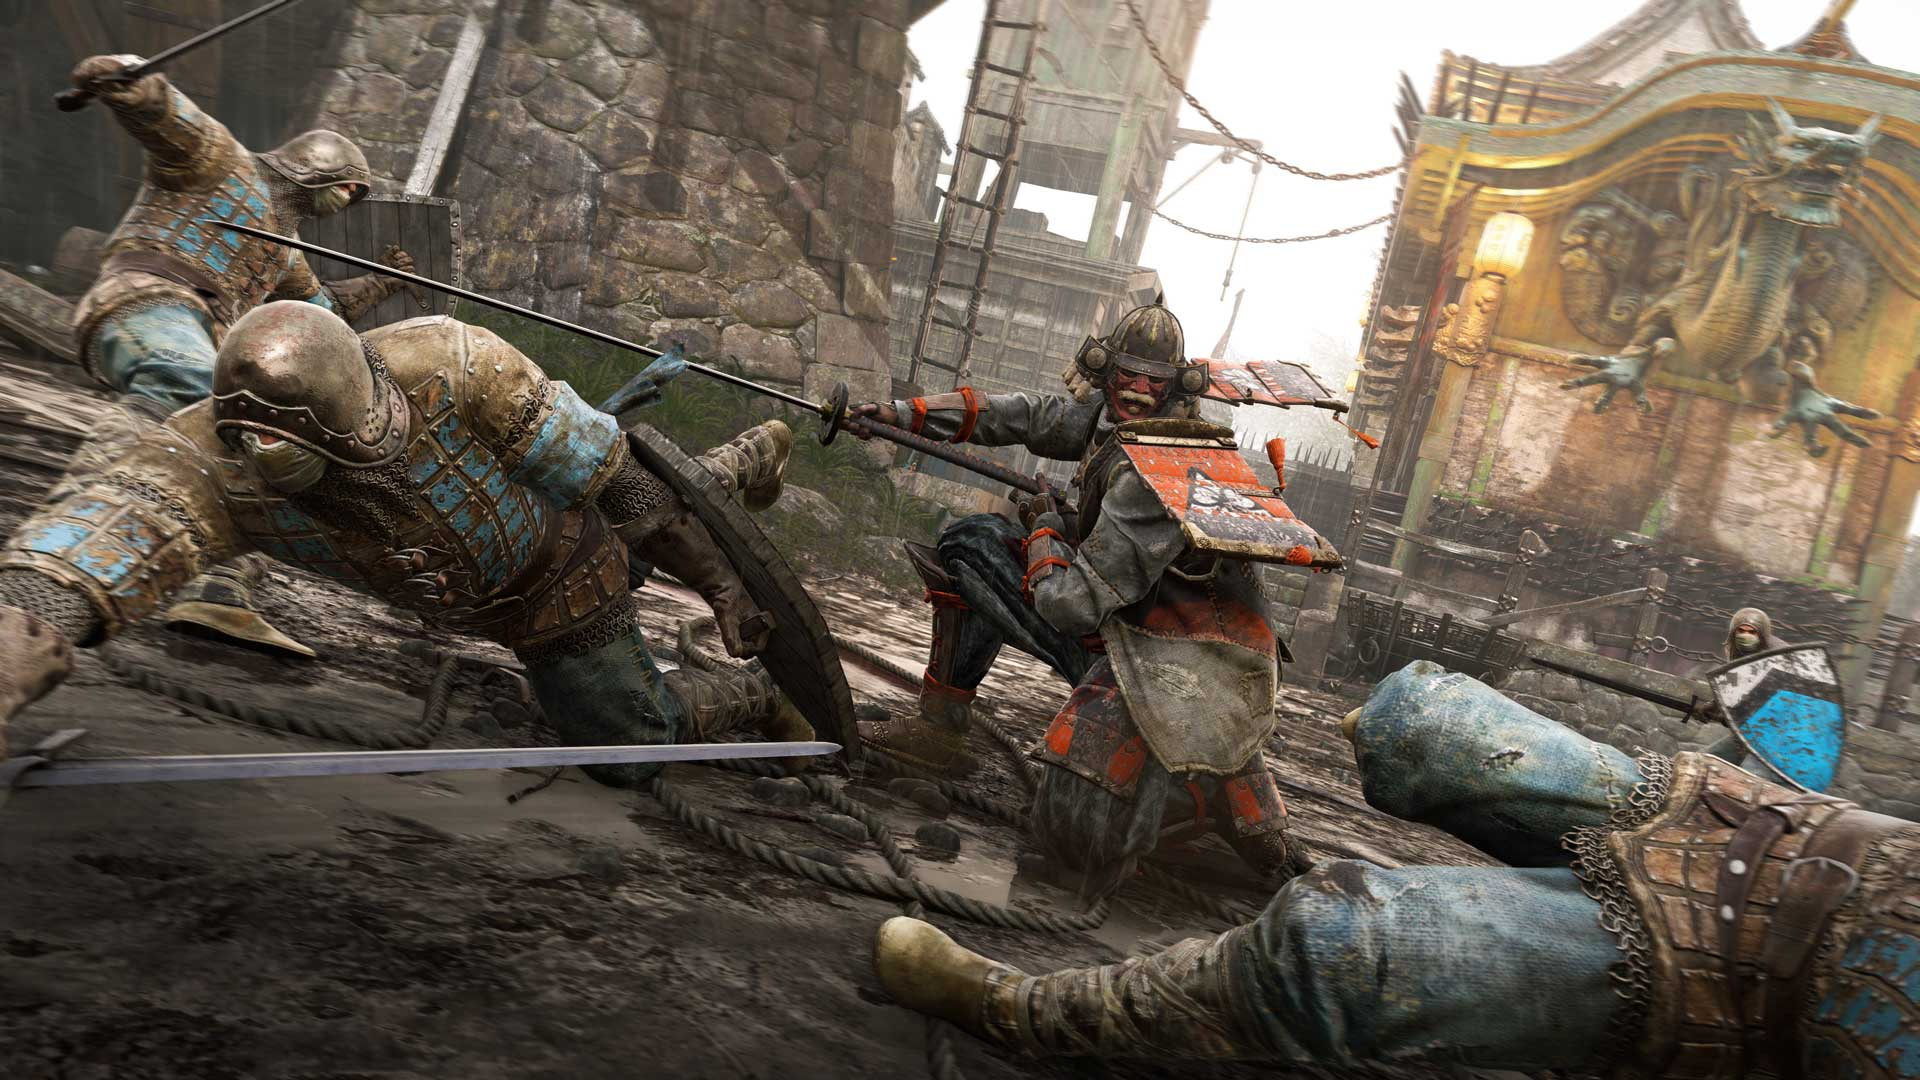 for honor download size ps4 2019